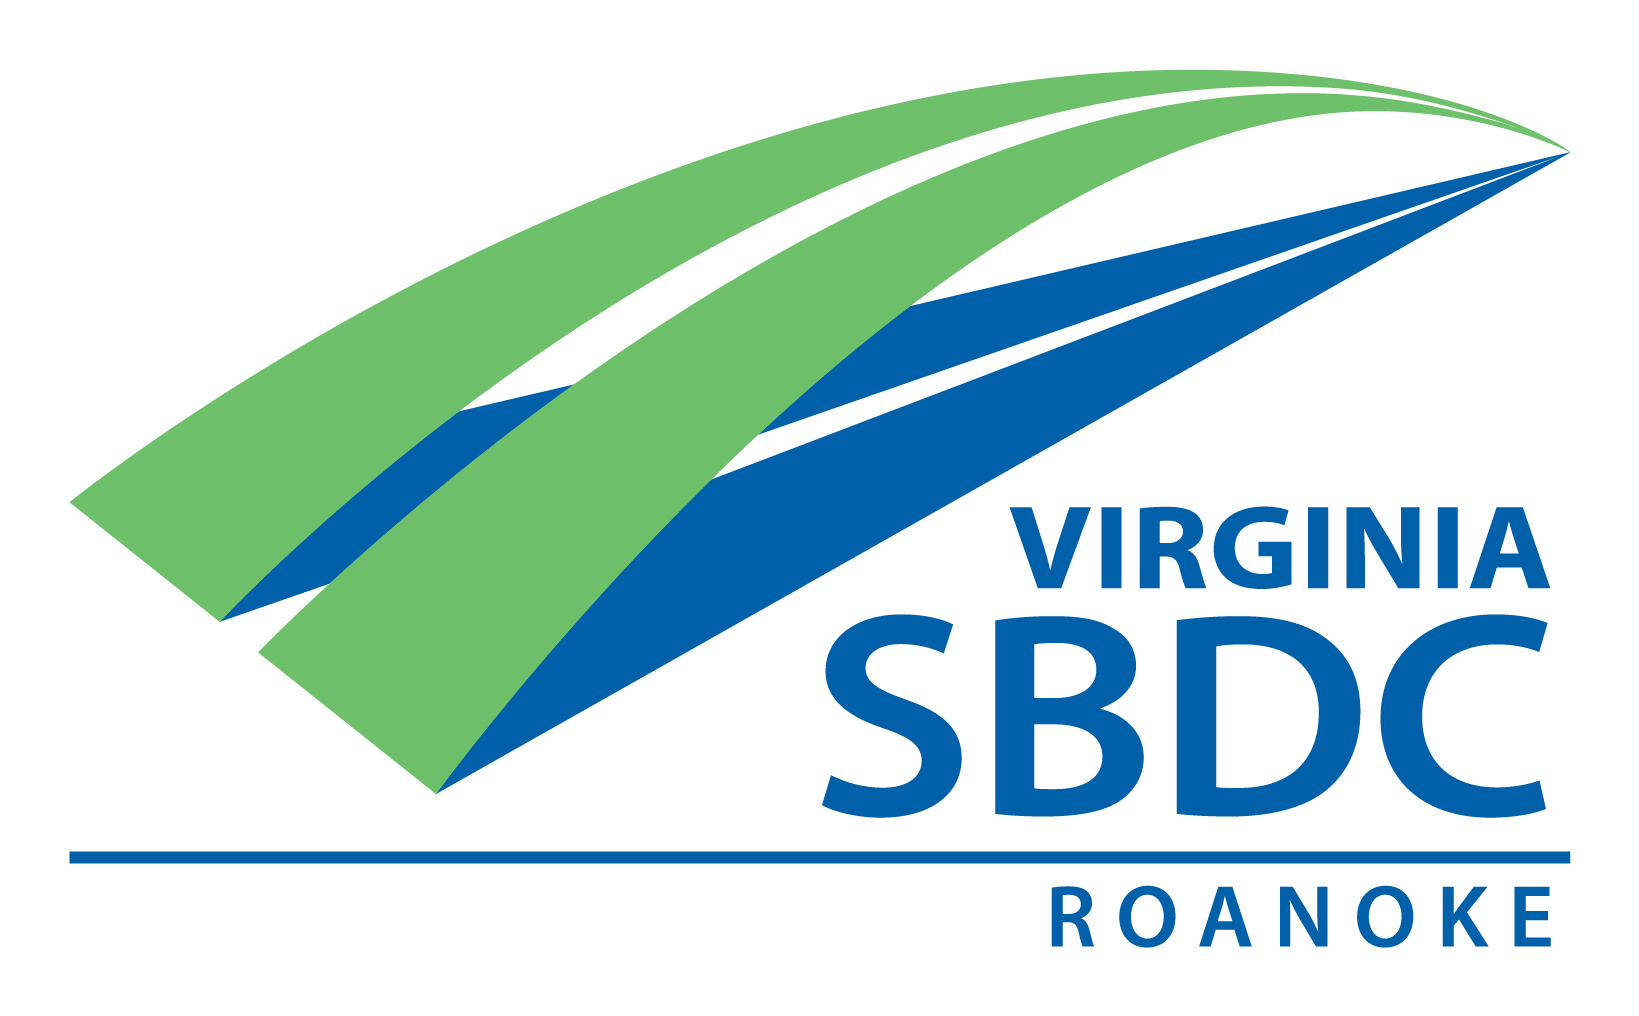 Virginia SBDC Roanoke logo